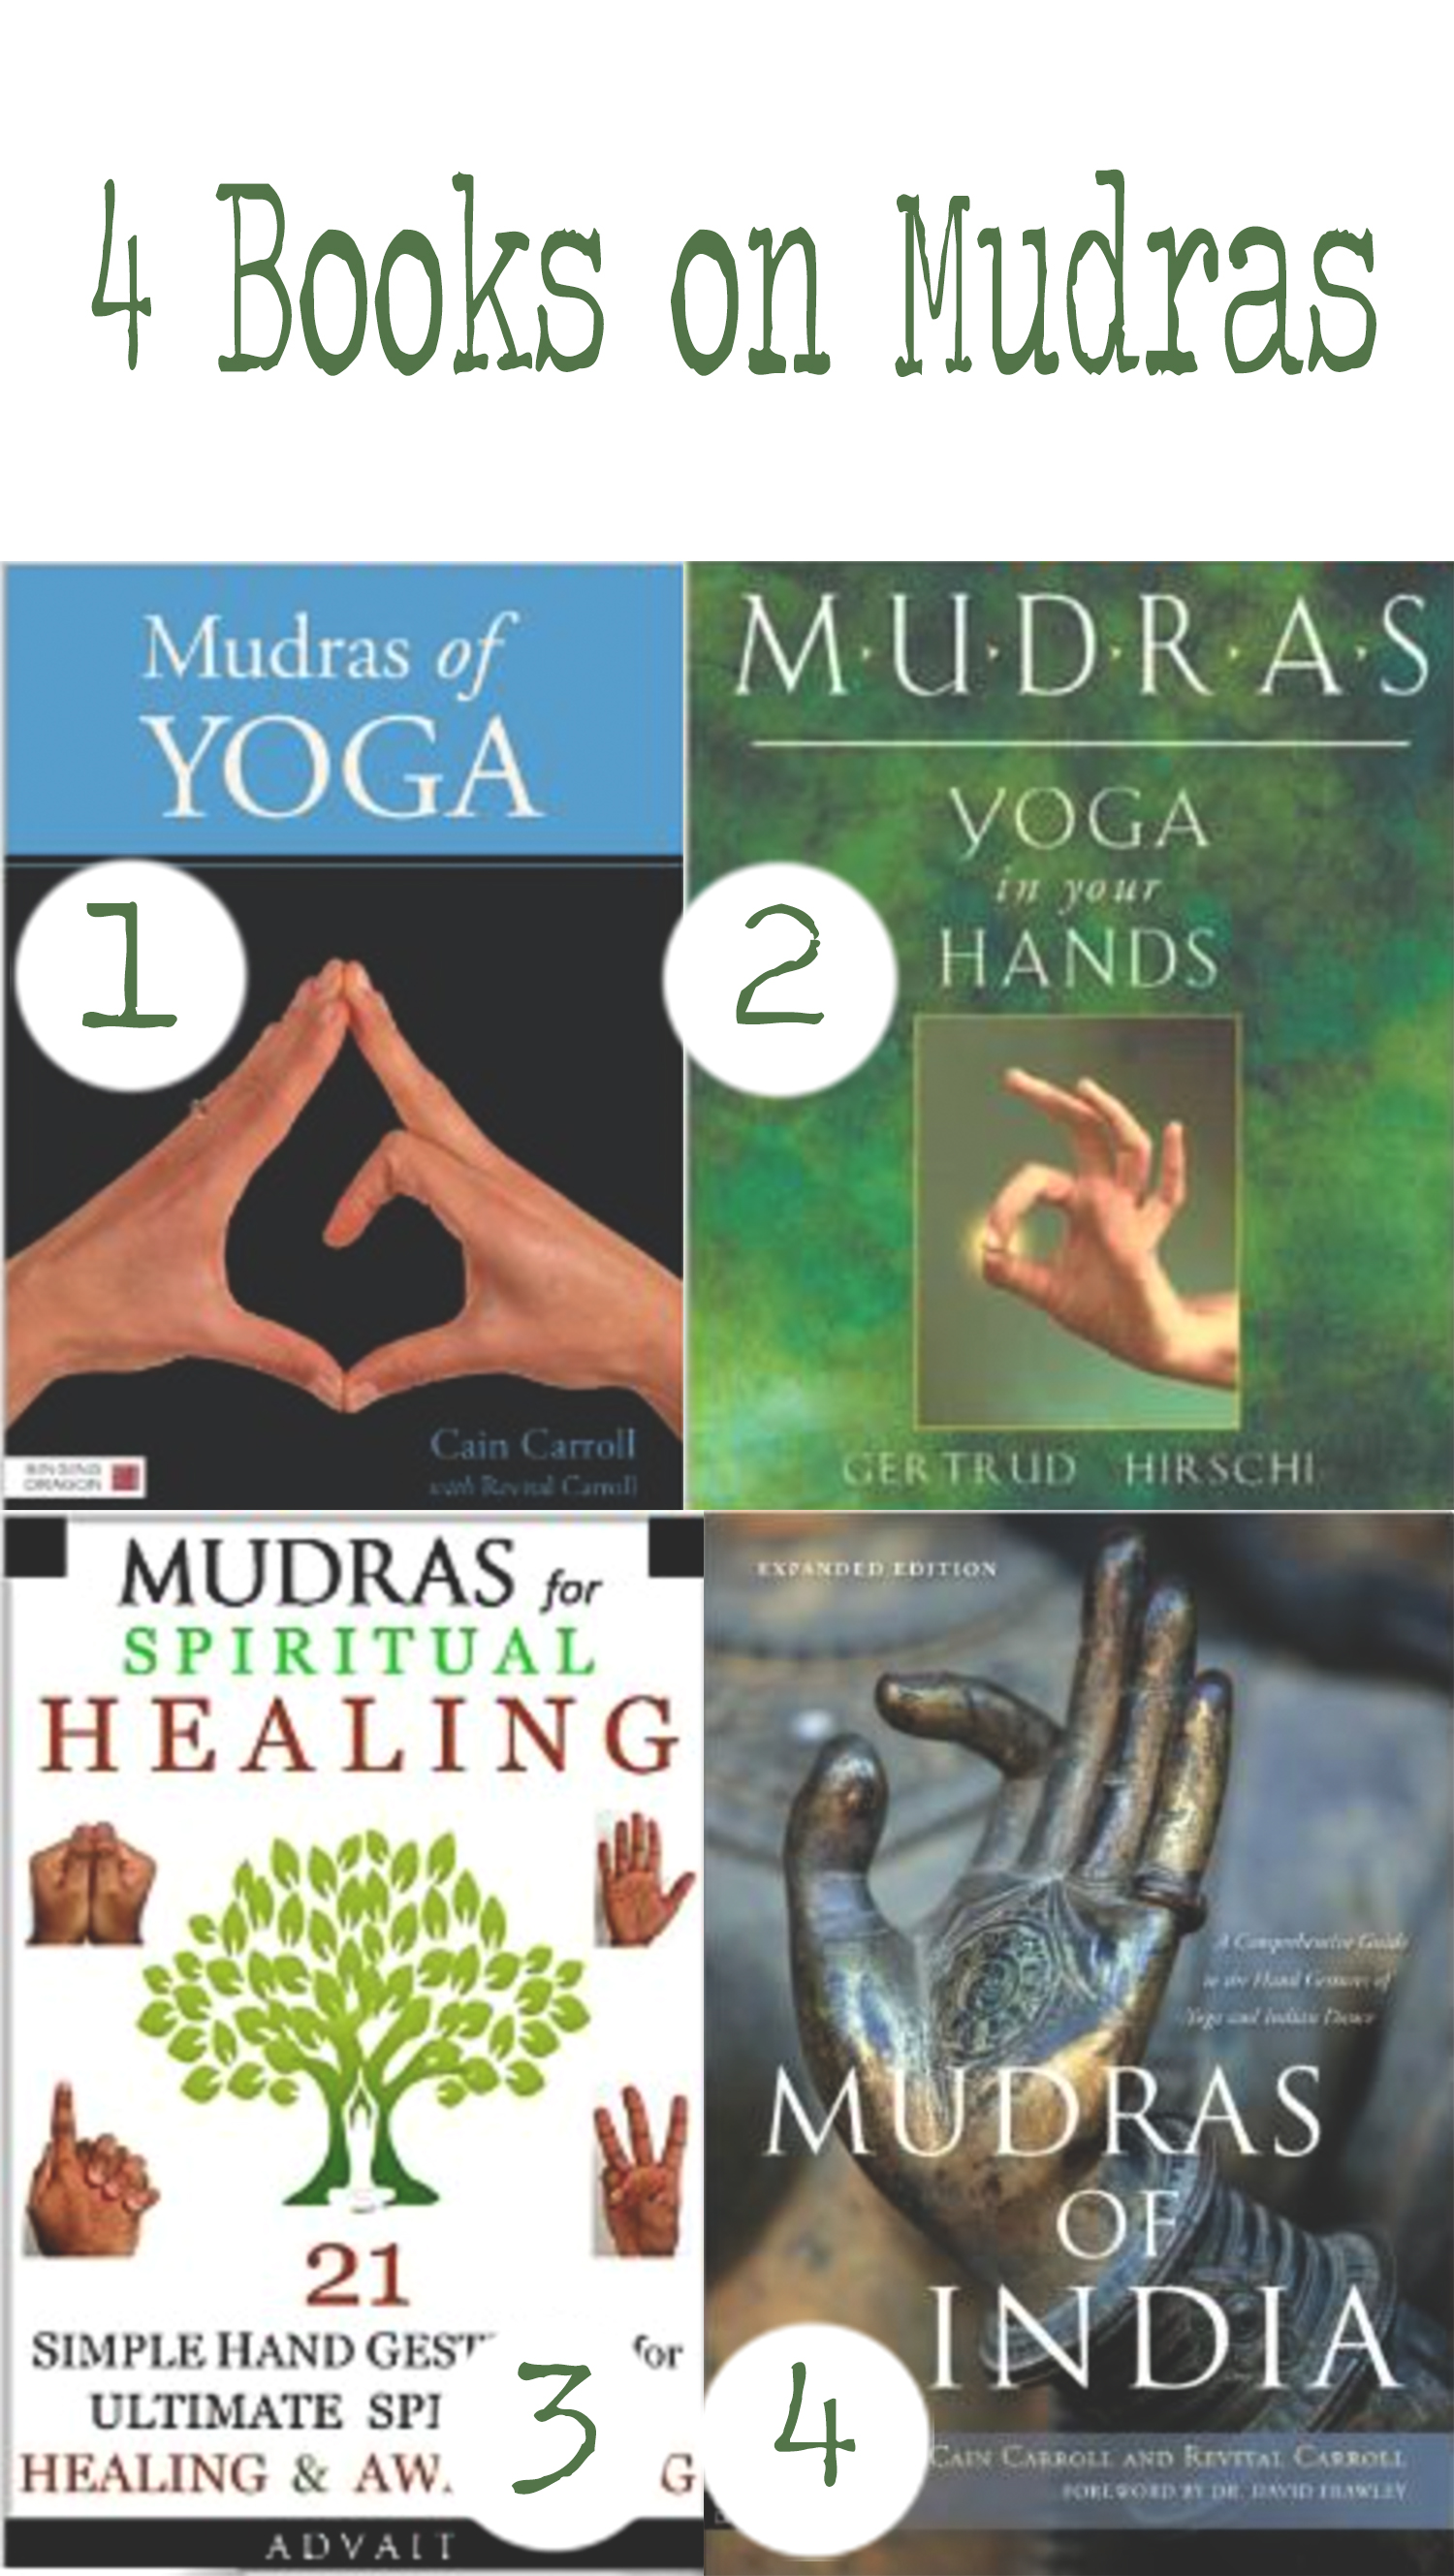 Pin it! Four books on mudras for yoga